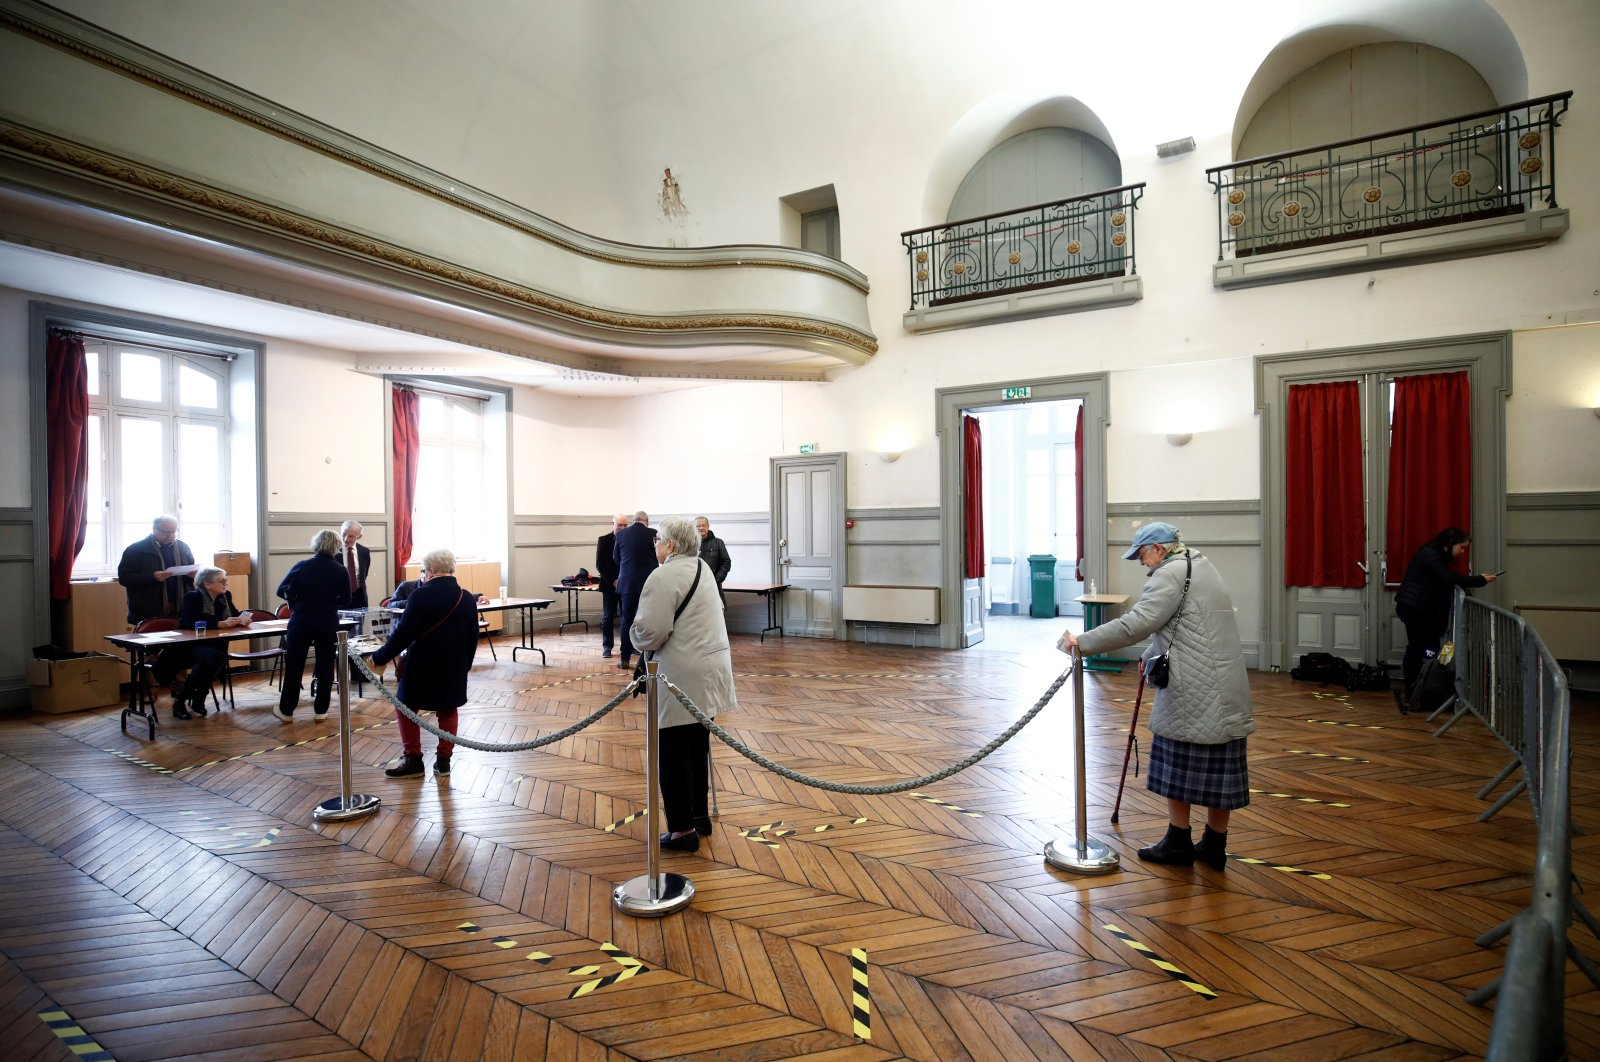 Voters line up inside a polling station during the first round of mayoral elections, Auray,  March 15, 2020. (REUTERS Photo)